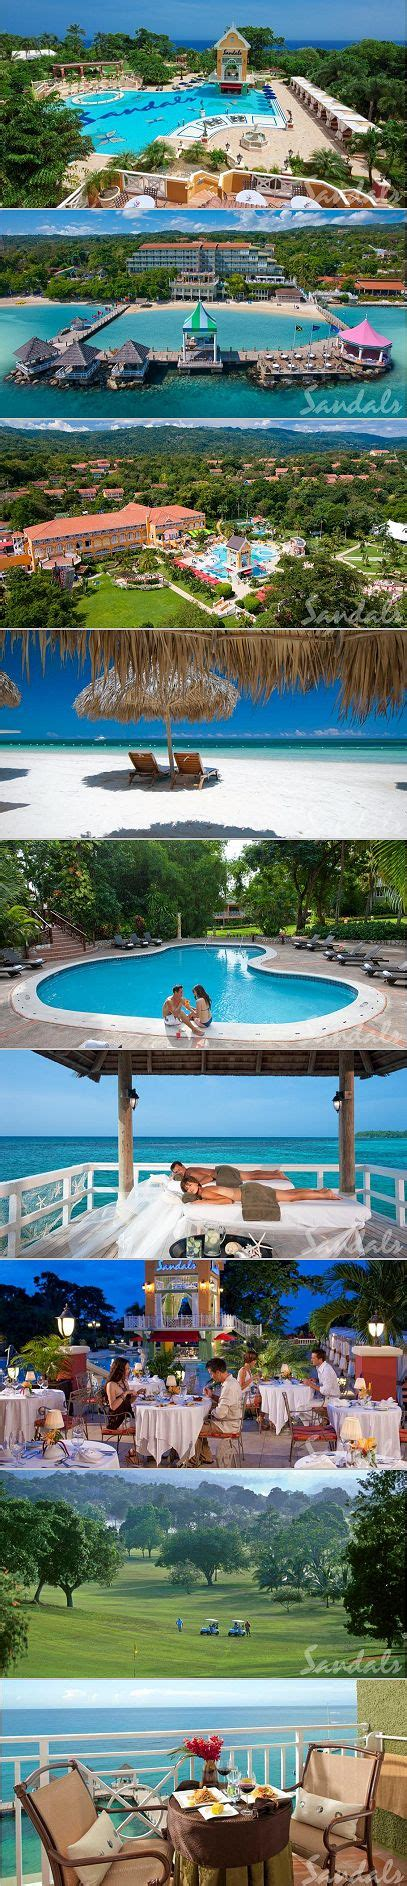 Best All Inclusive Resorts For Couples The Top Caribbean All Inclusive Resorts For Couples